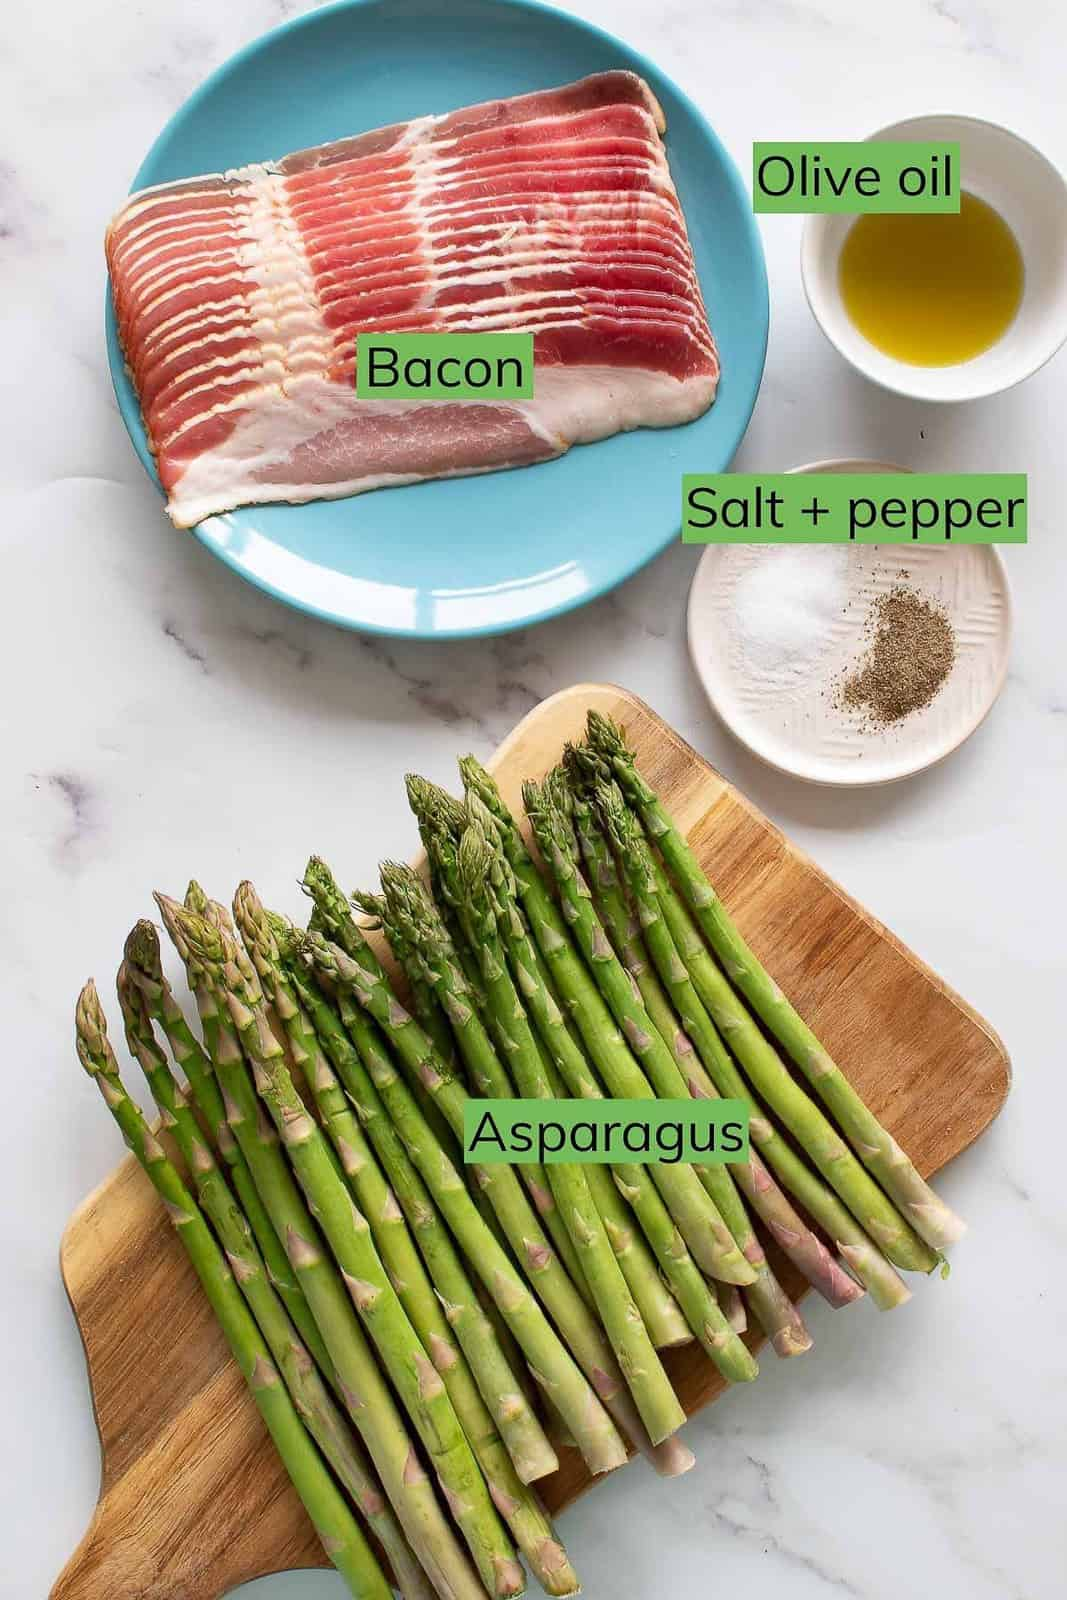 The ingredients for bacon wrapped asparagus laid out on a table.